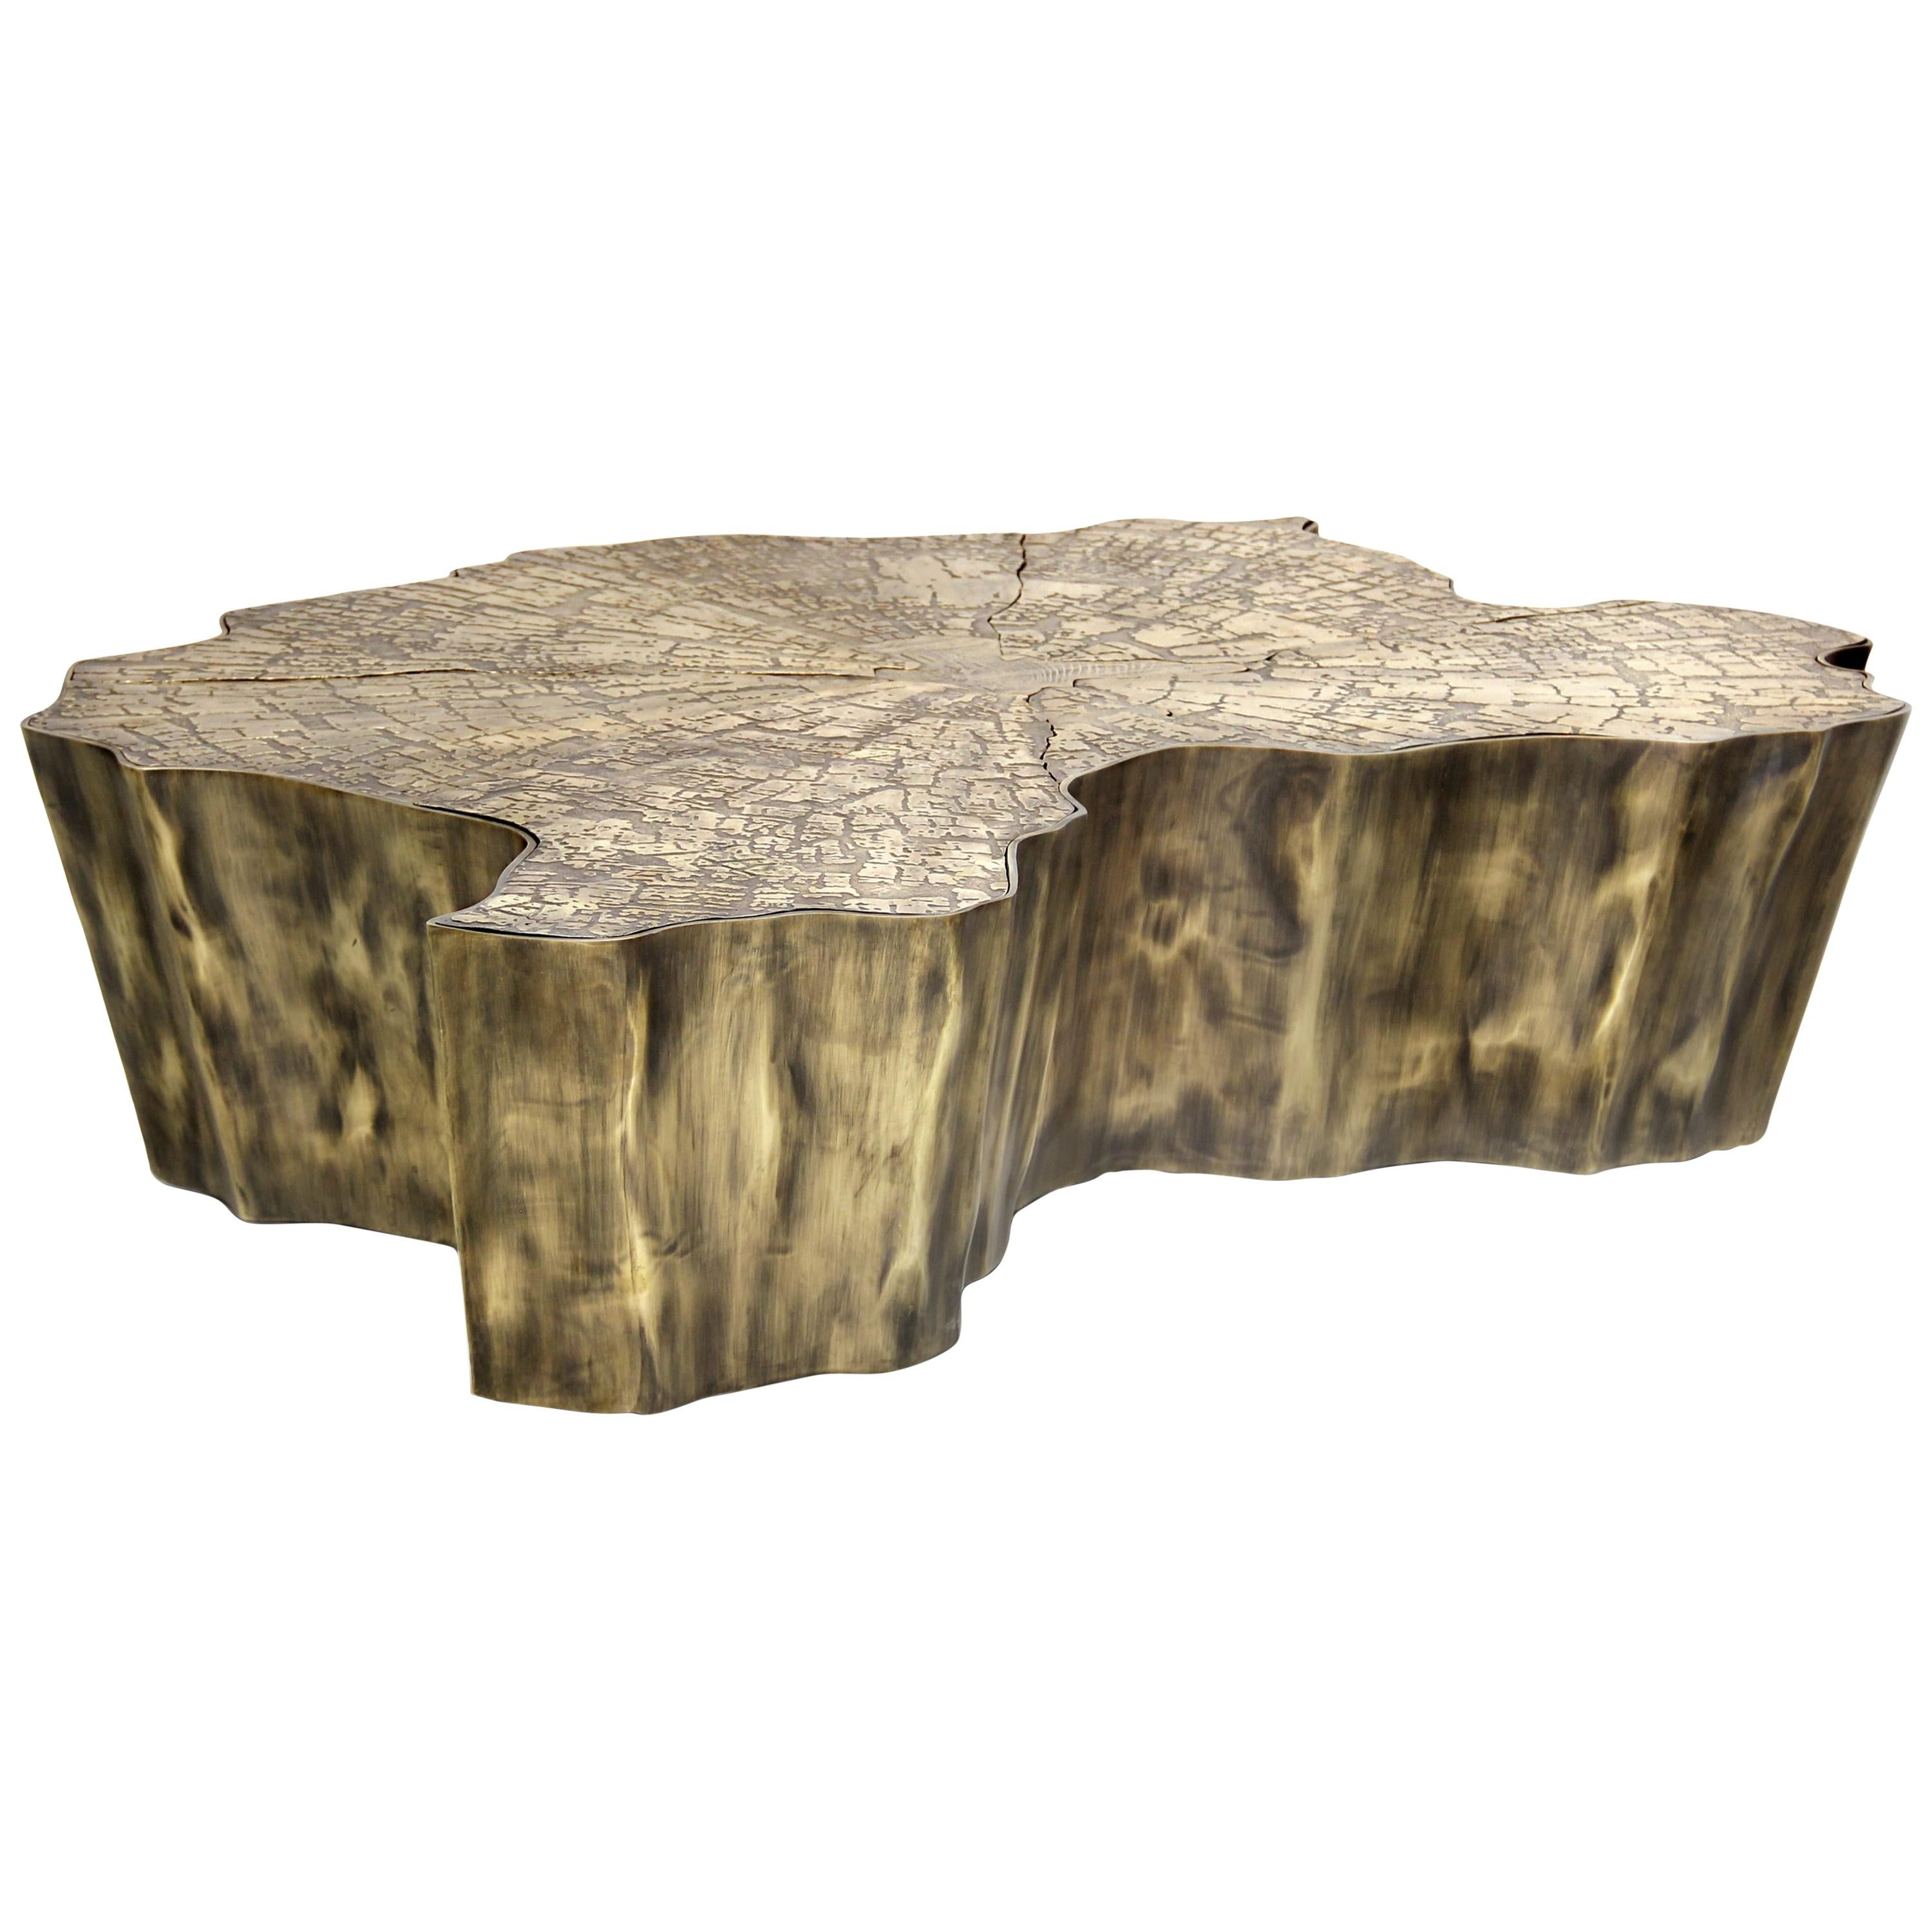 Eden Big Center Table in Patina Casted Brass